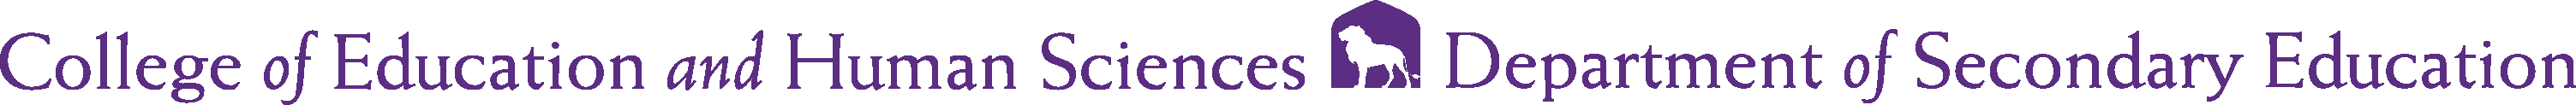 College of Education and Human Services - Secondary Education Logo - Purple - Version 2